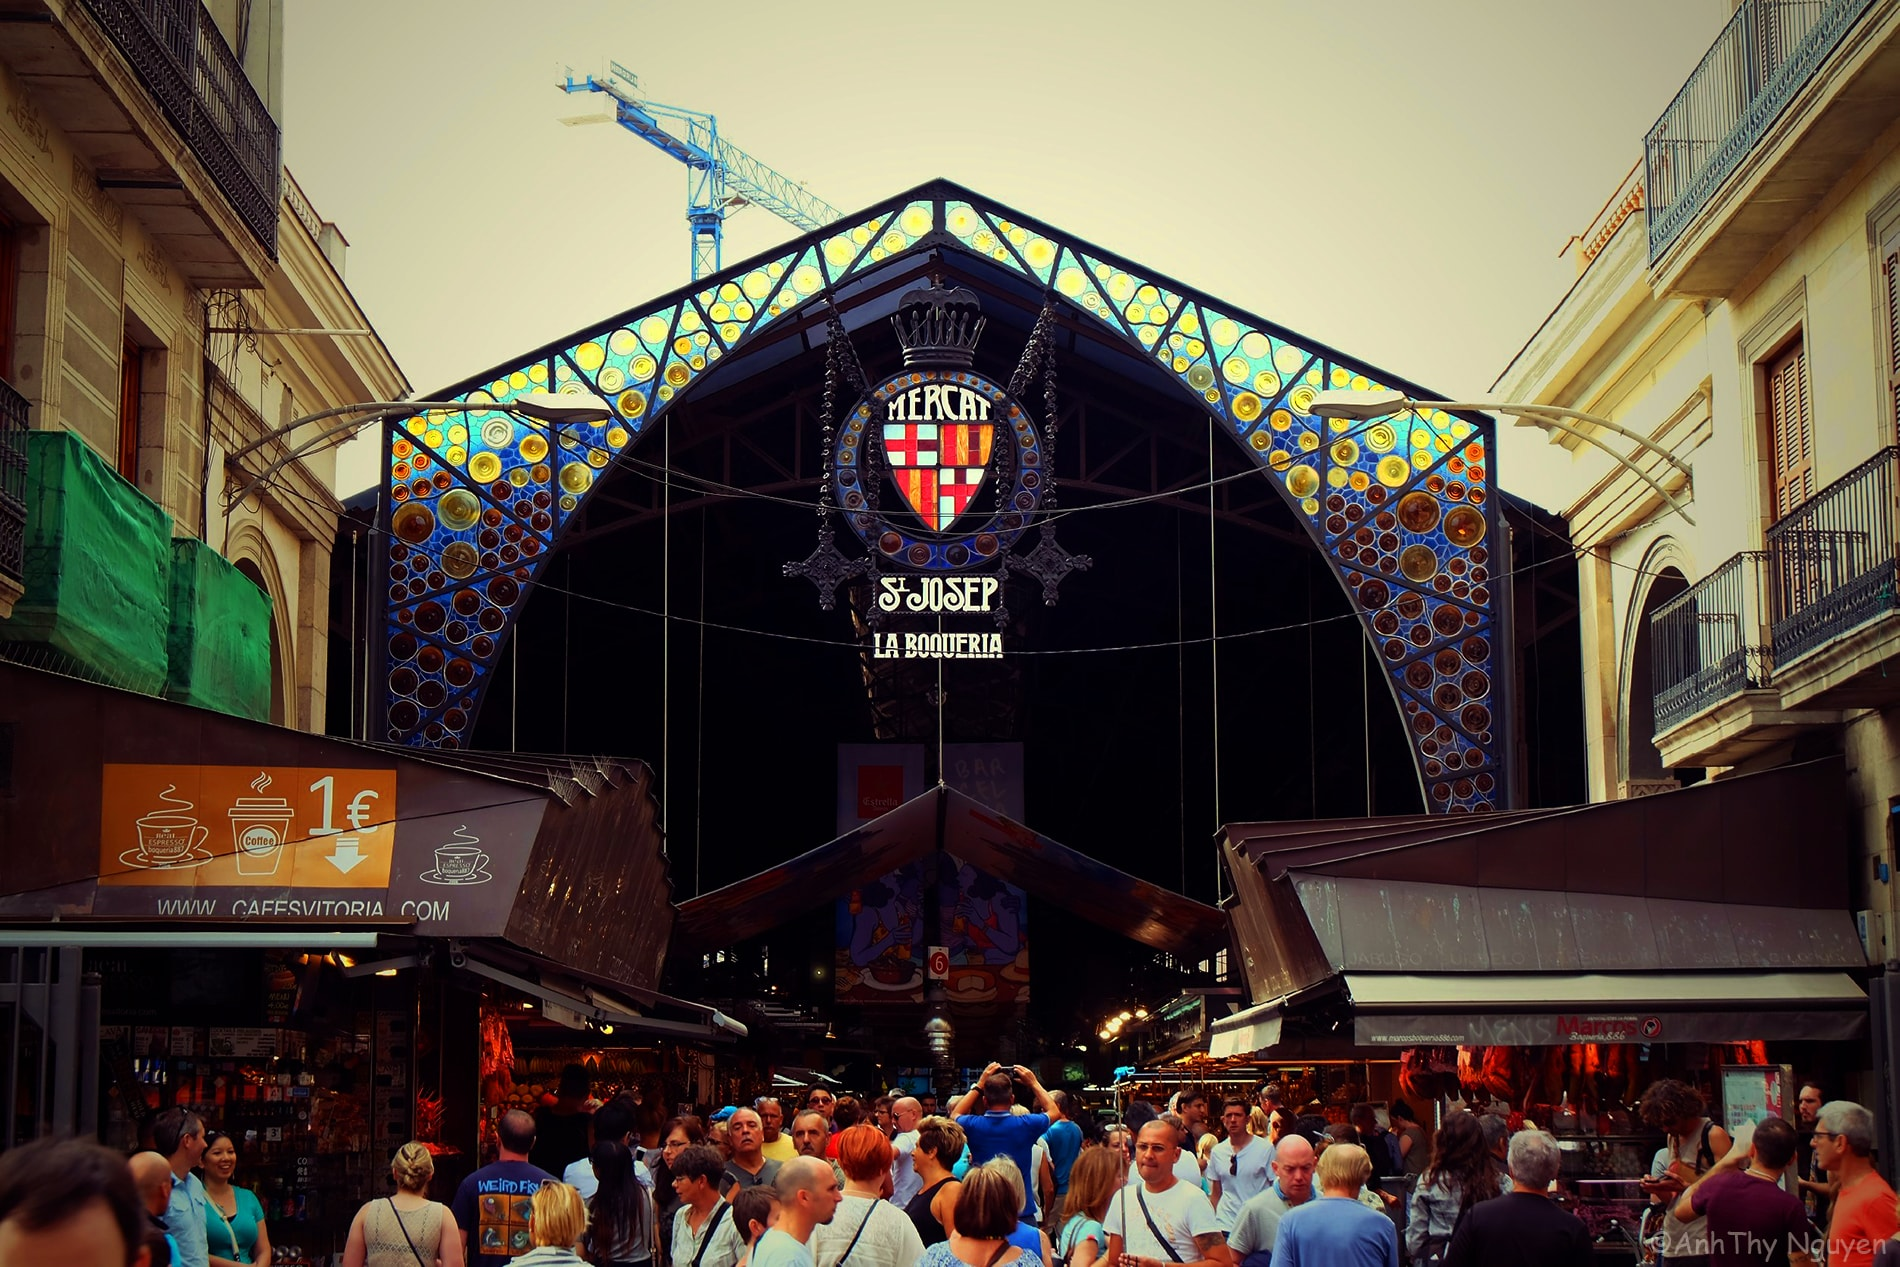 The entrance - La Boqueria Food Market Barcelona